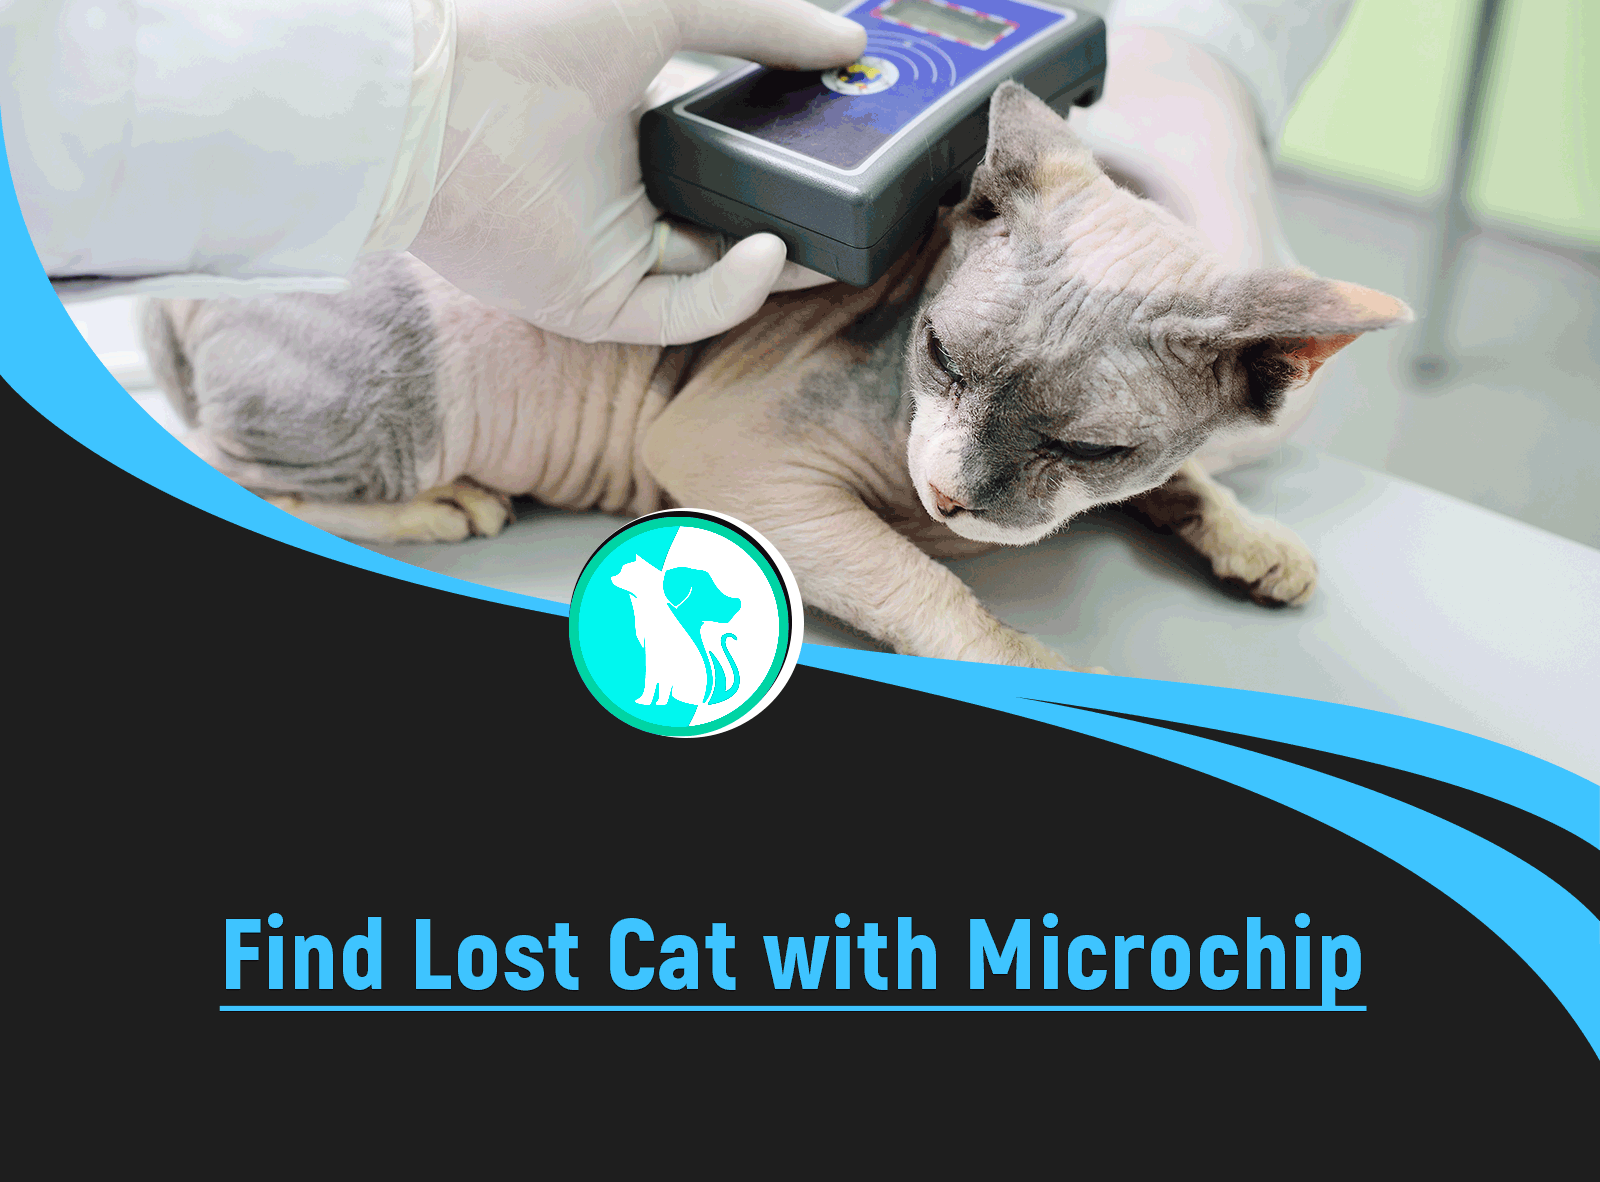 How to Find a Lost Cat with a Microchip